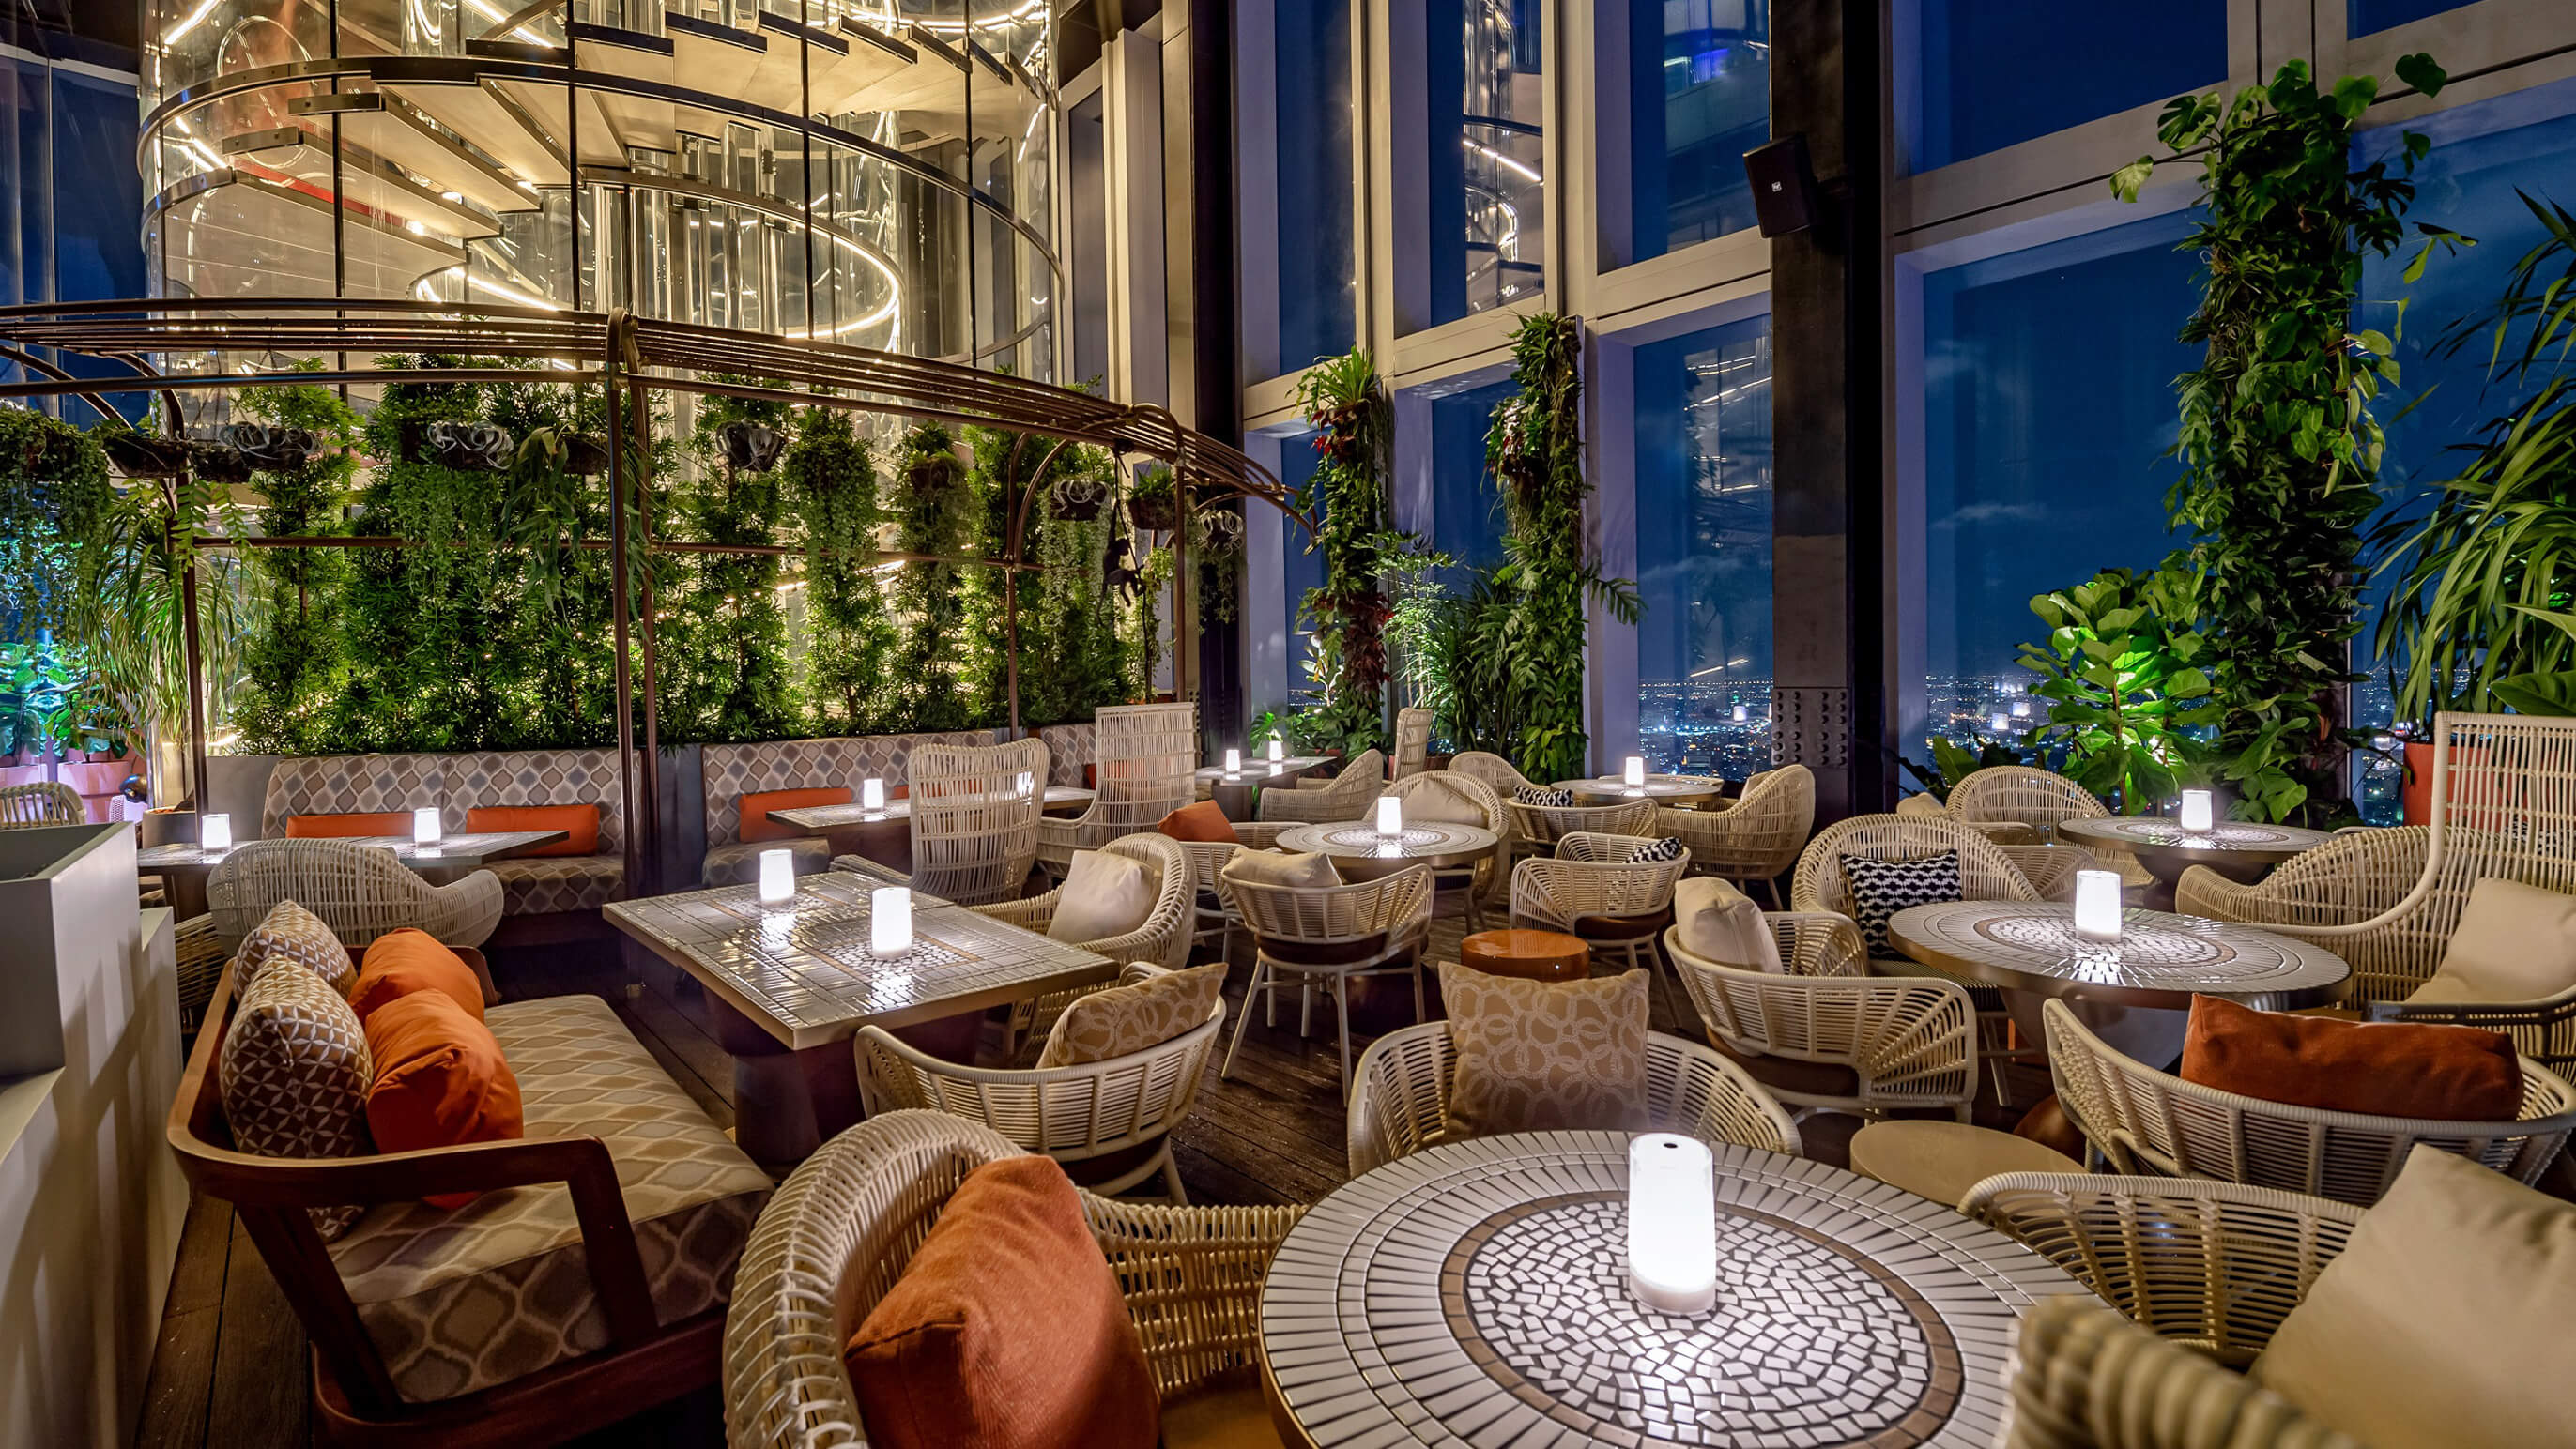 Thailand's highest restaurant and bar opens in Bangkok